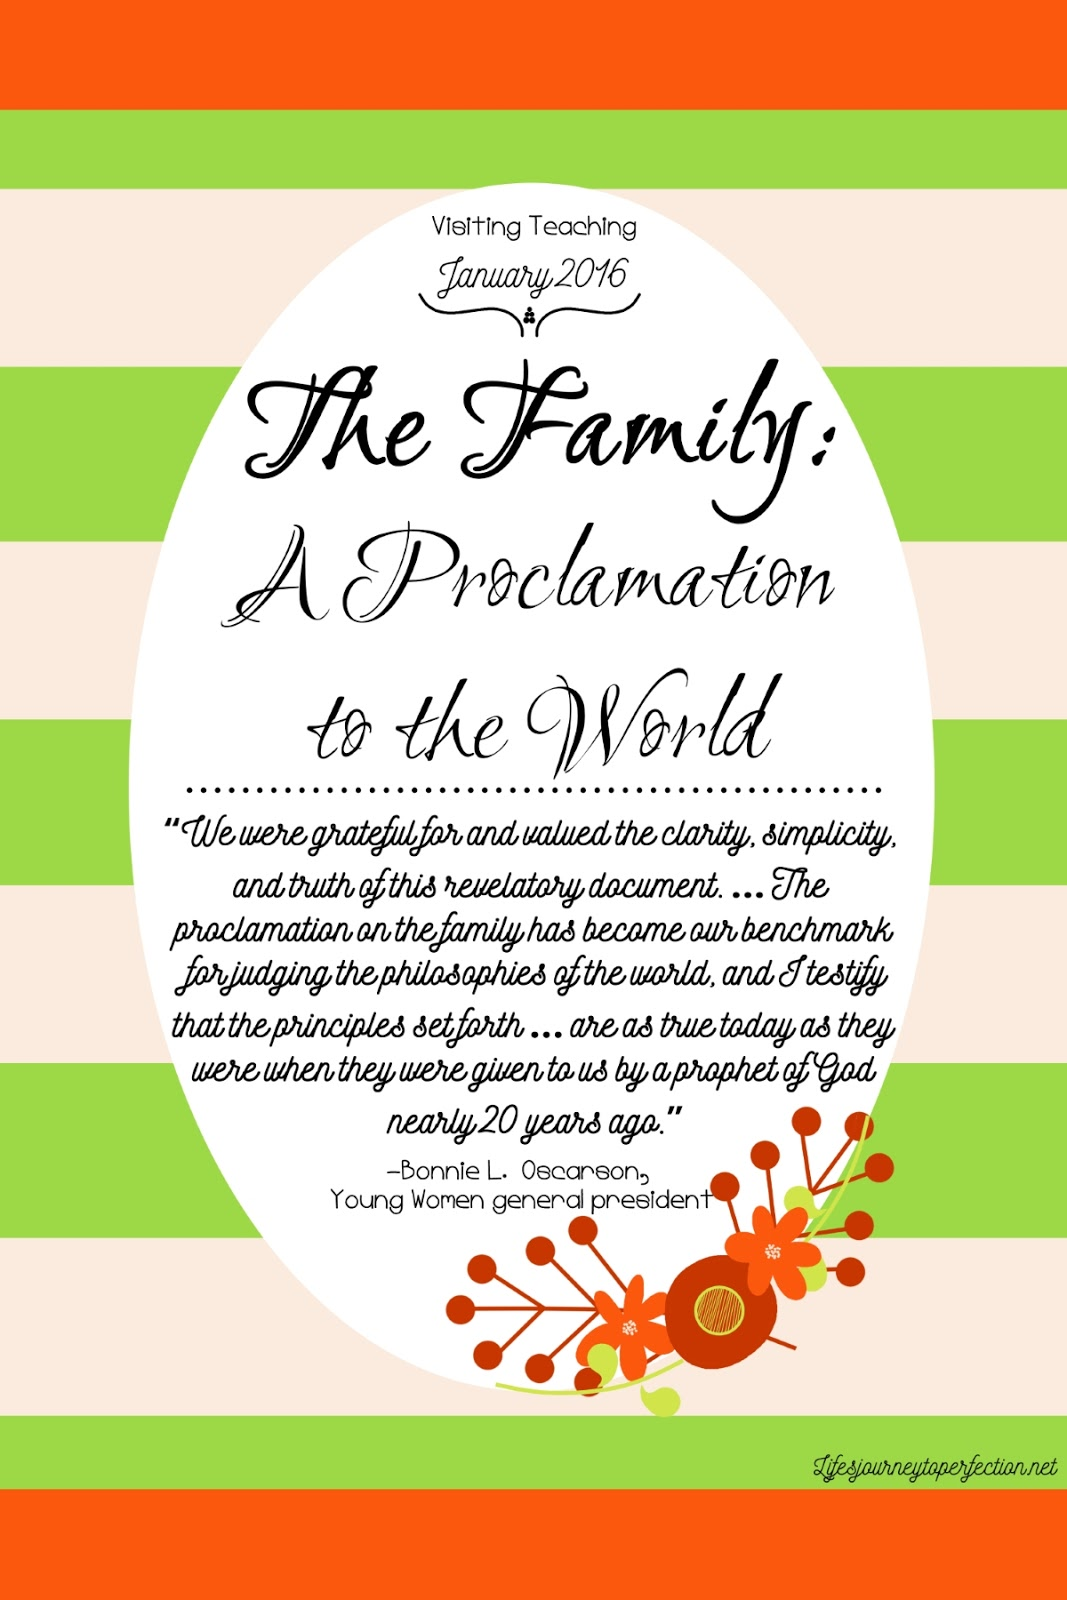 graphic regarding The Family a Proclamation to the World Printable called Lifes Excursion Towards Perfection: Checking out Schooling Suggestions for